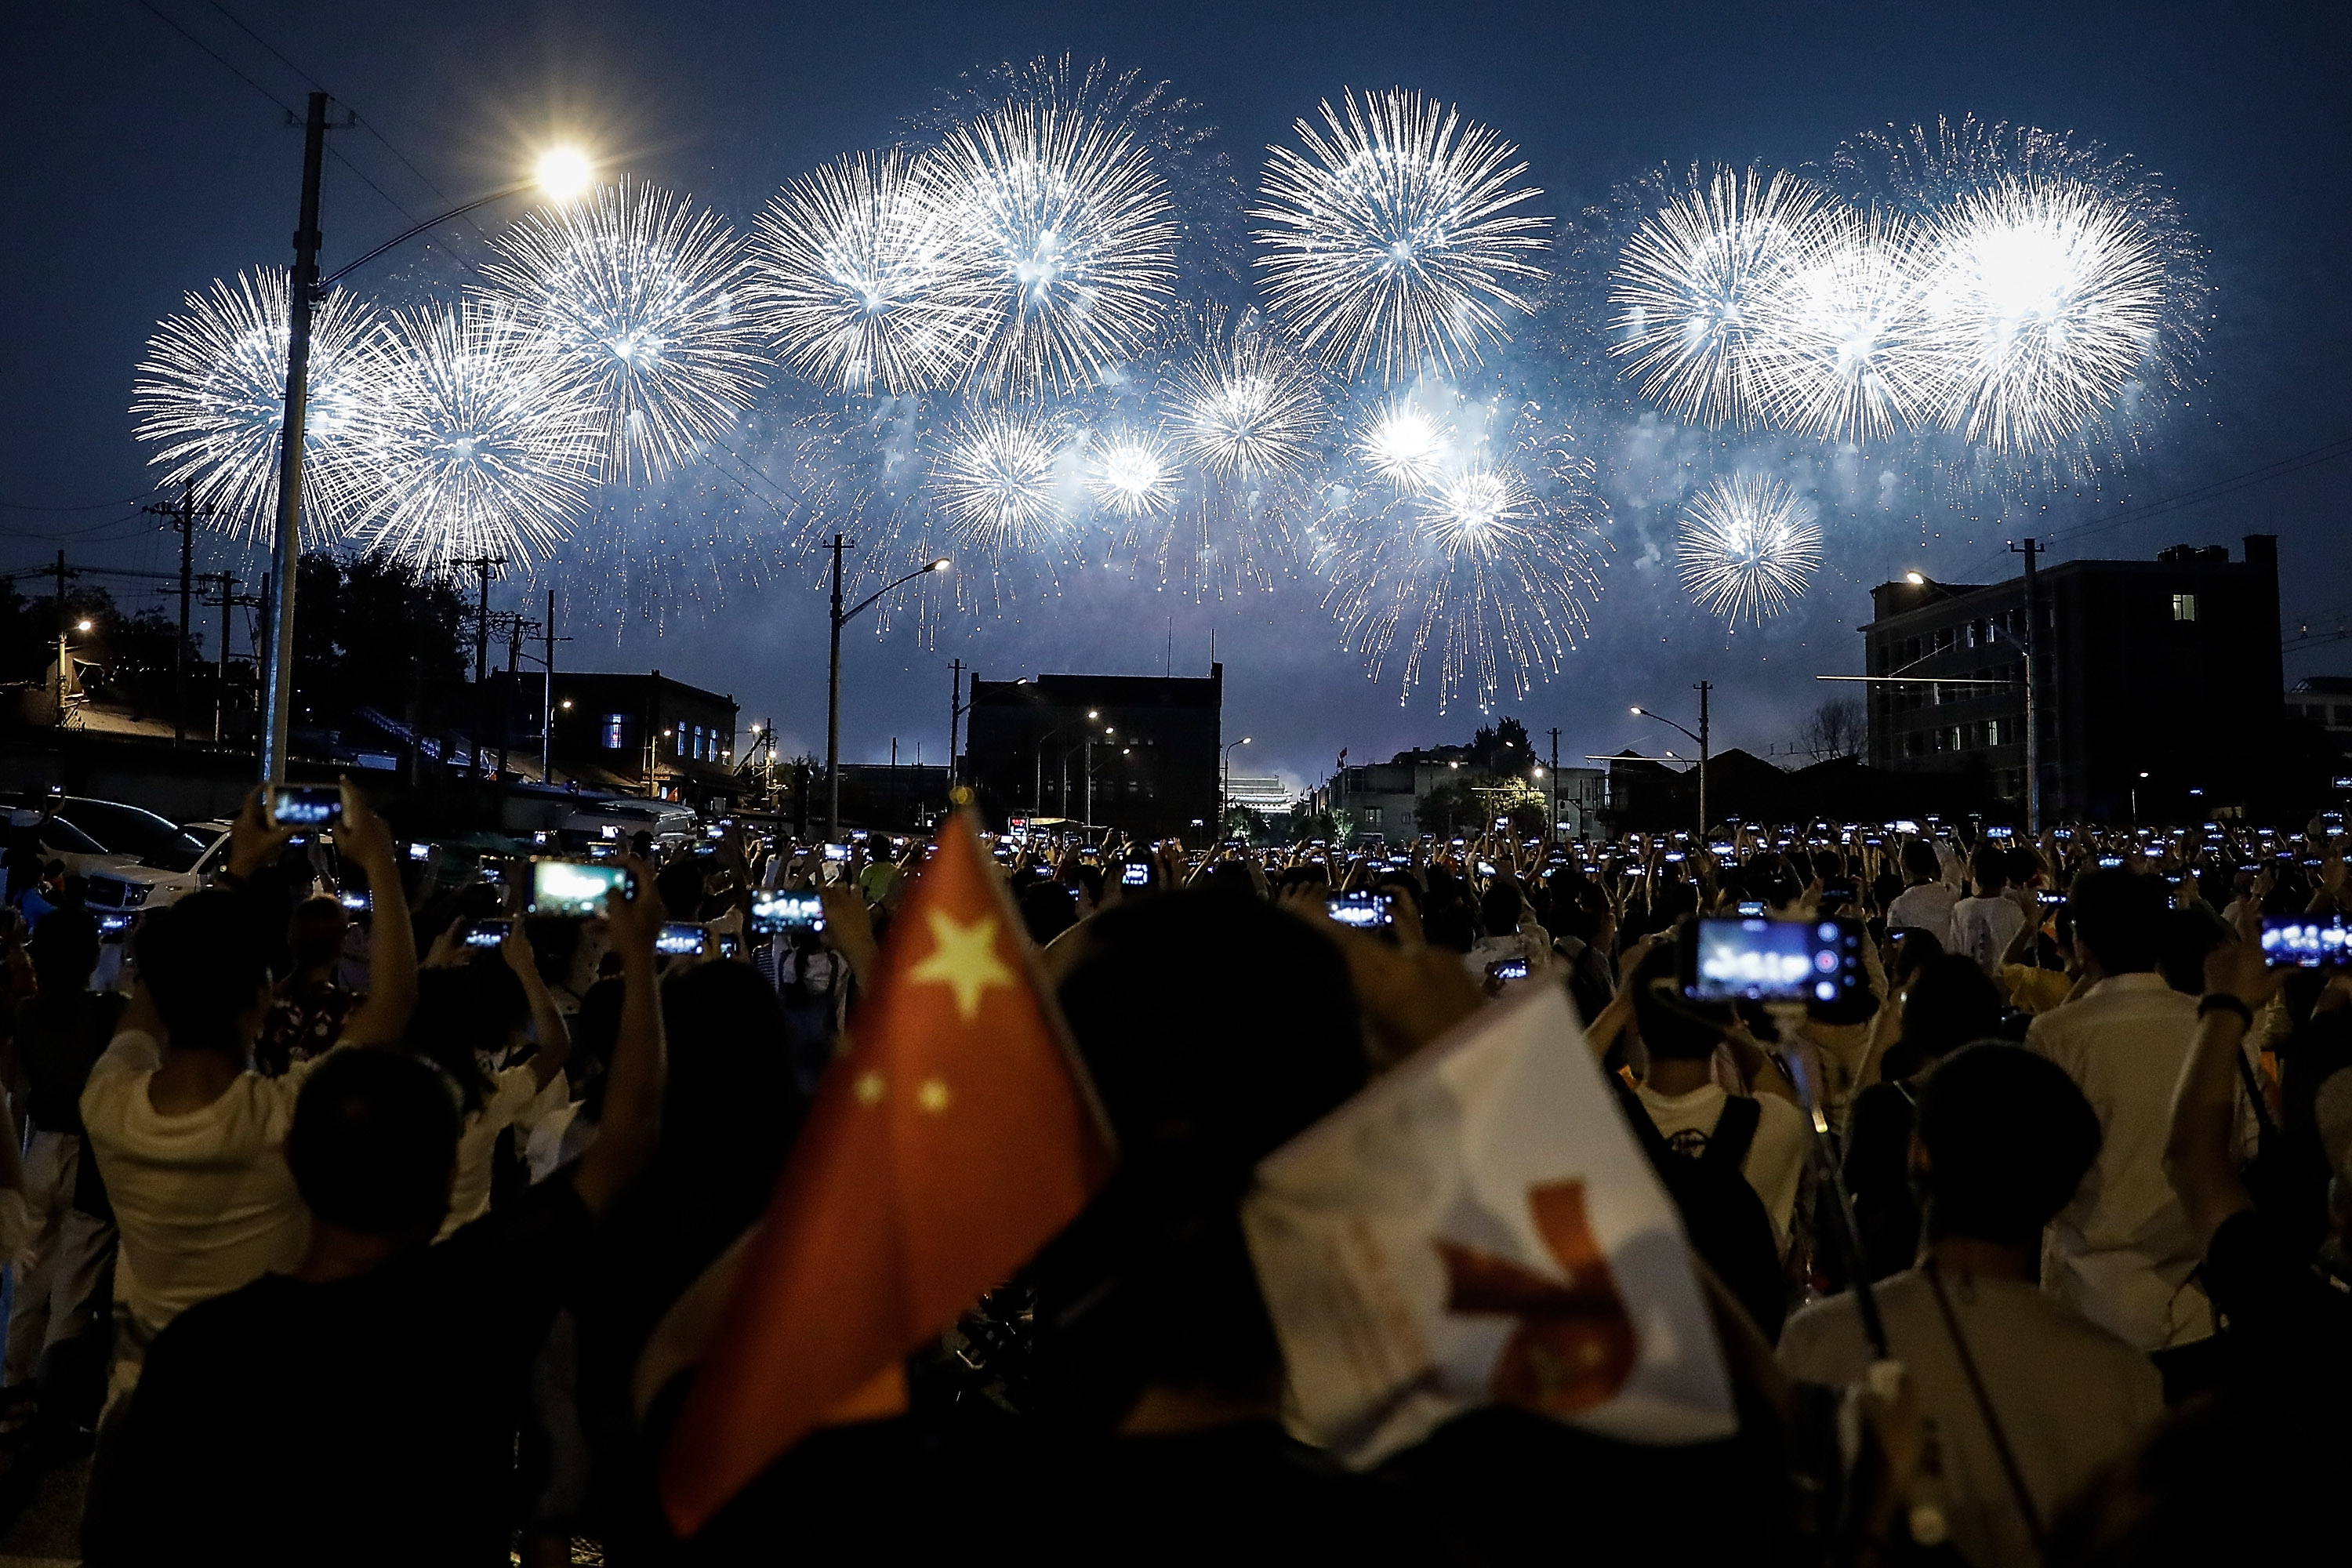 Fireworks explode during China's Oct. 1, 2019, parade in Beijing. (Wang He/Getty Images)